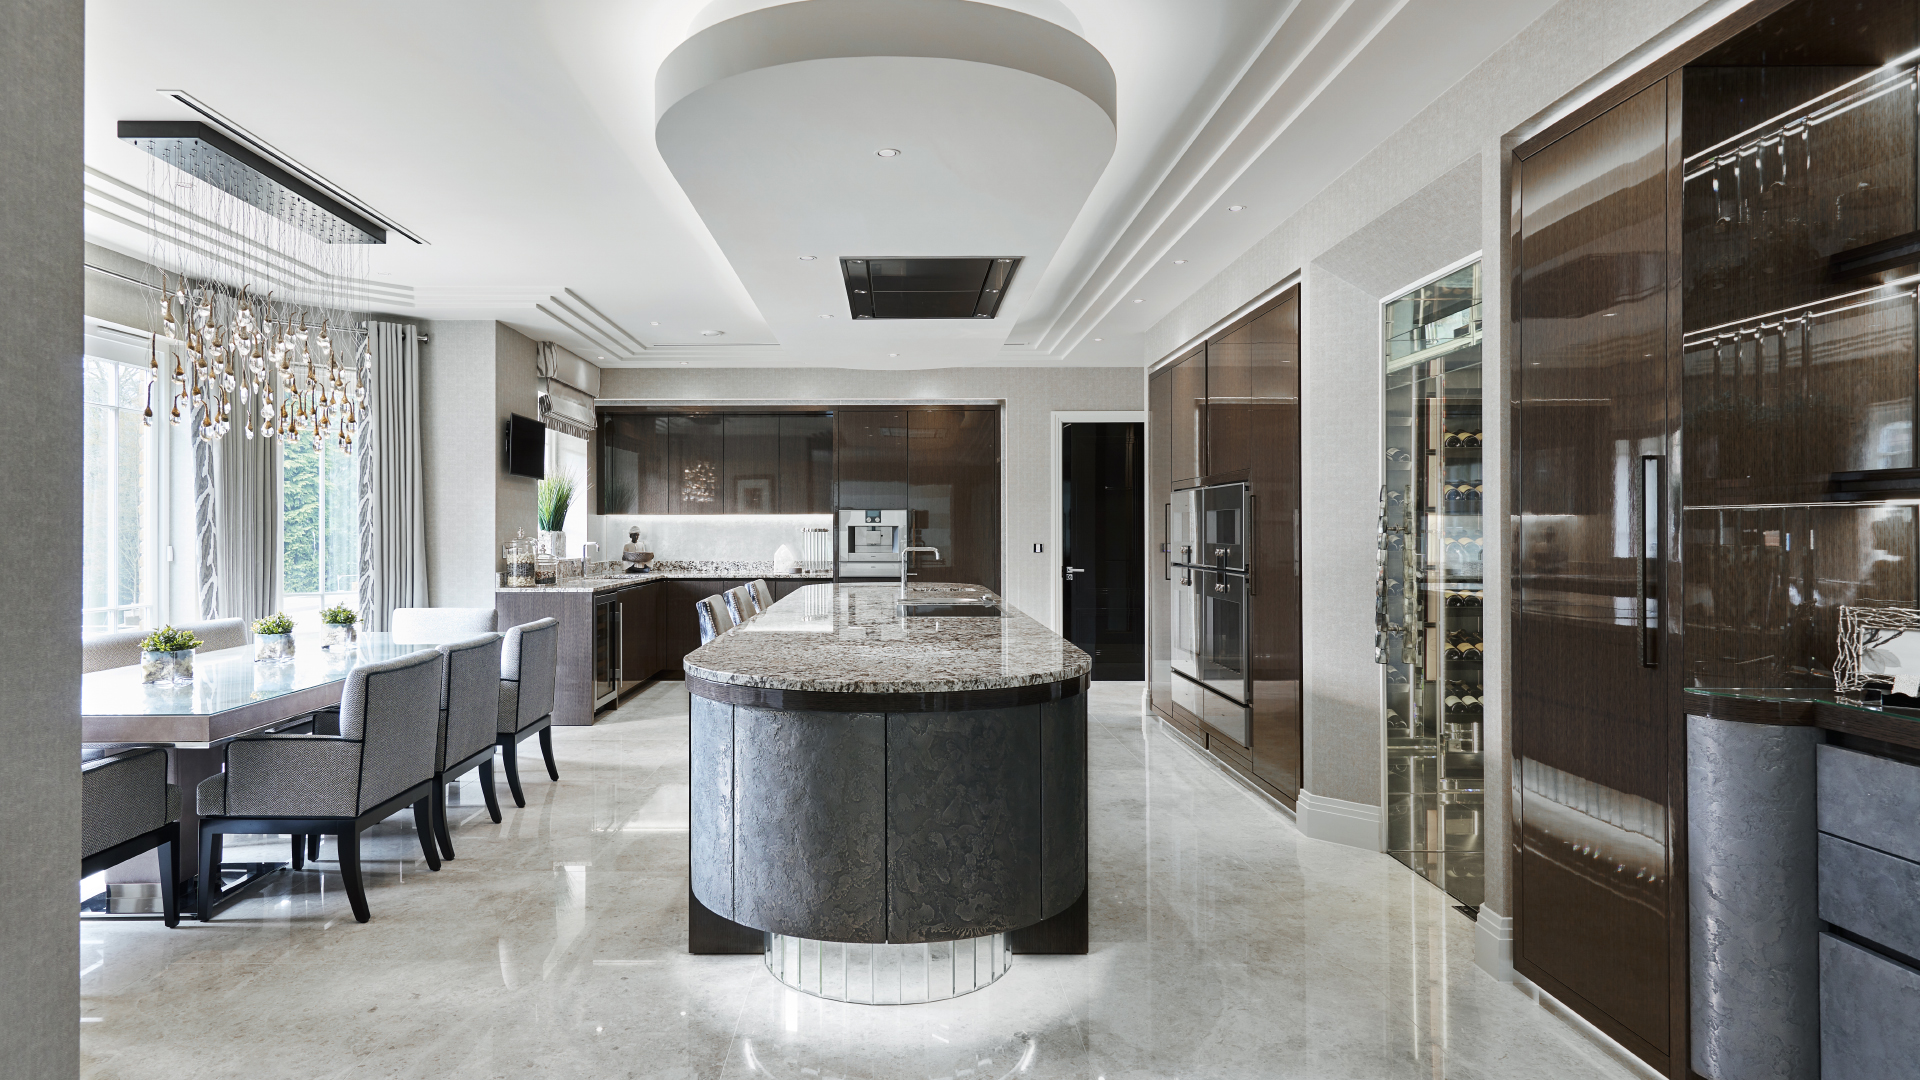 Luxury new kitchen st george 39 s hill surrey extreme design for Luxury kitchen design